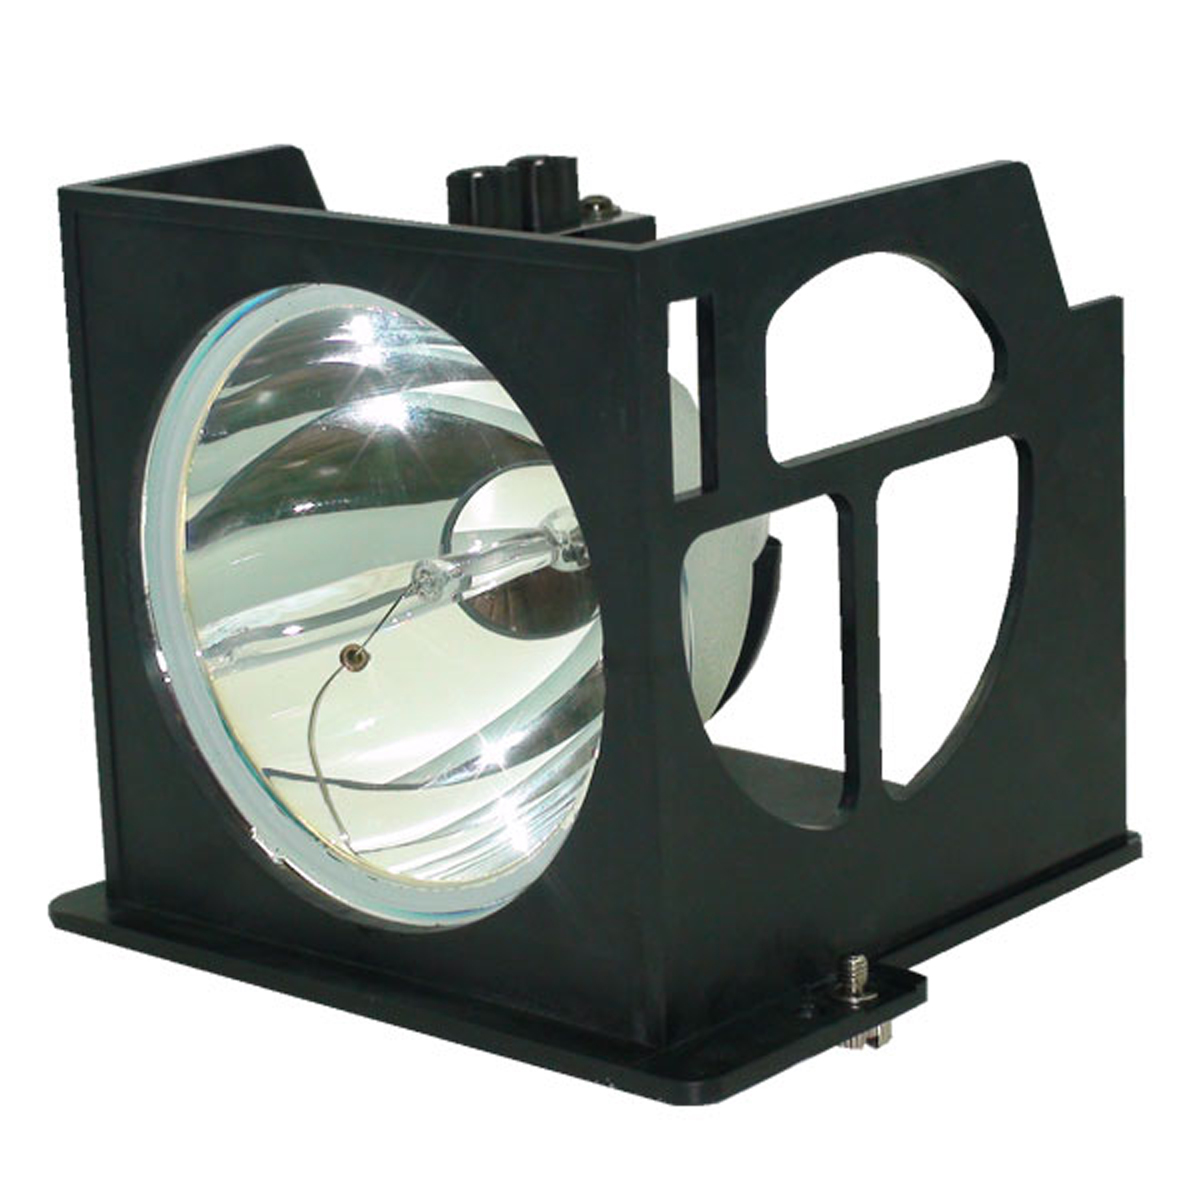 Sharp AN-R65LP1/1 TV Lamp